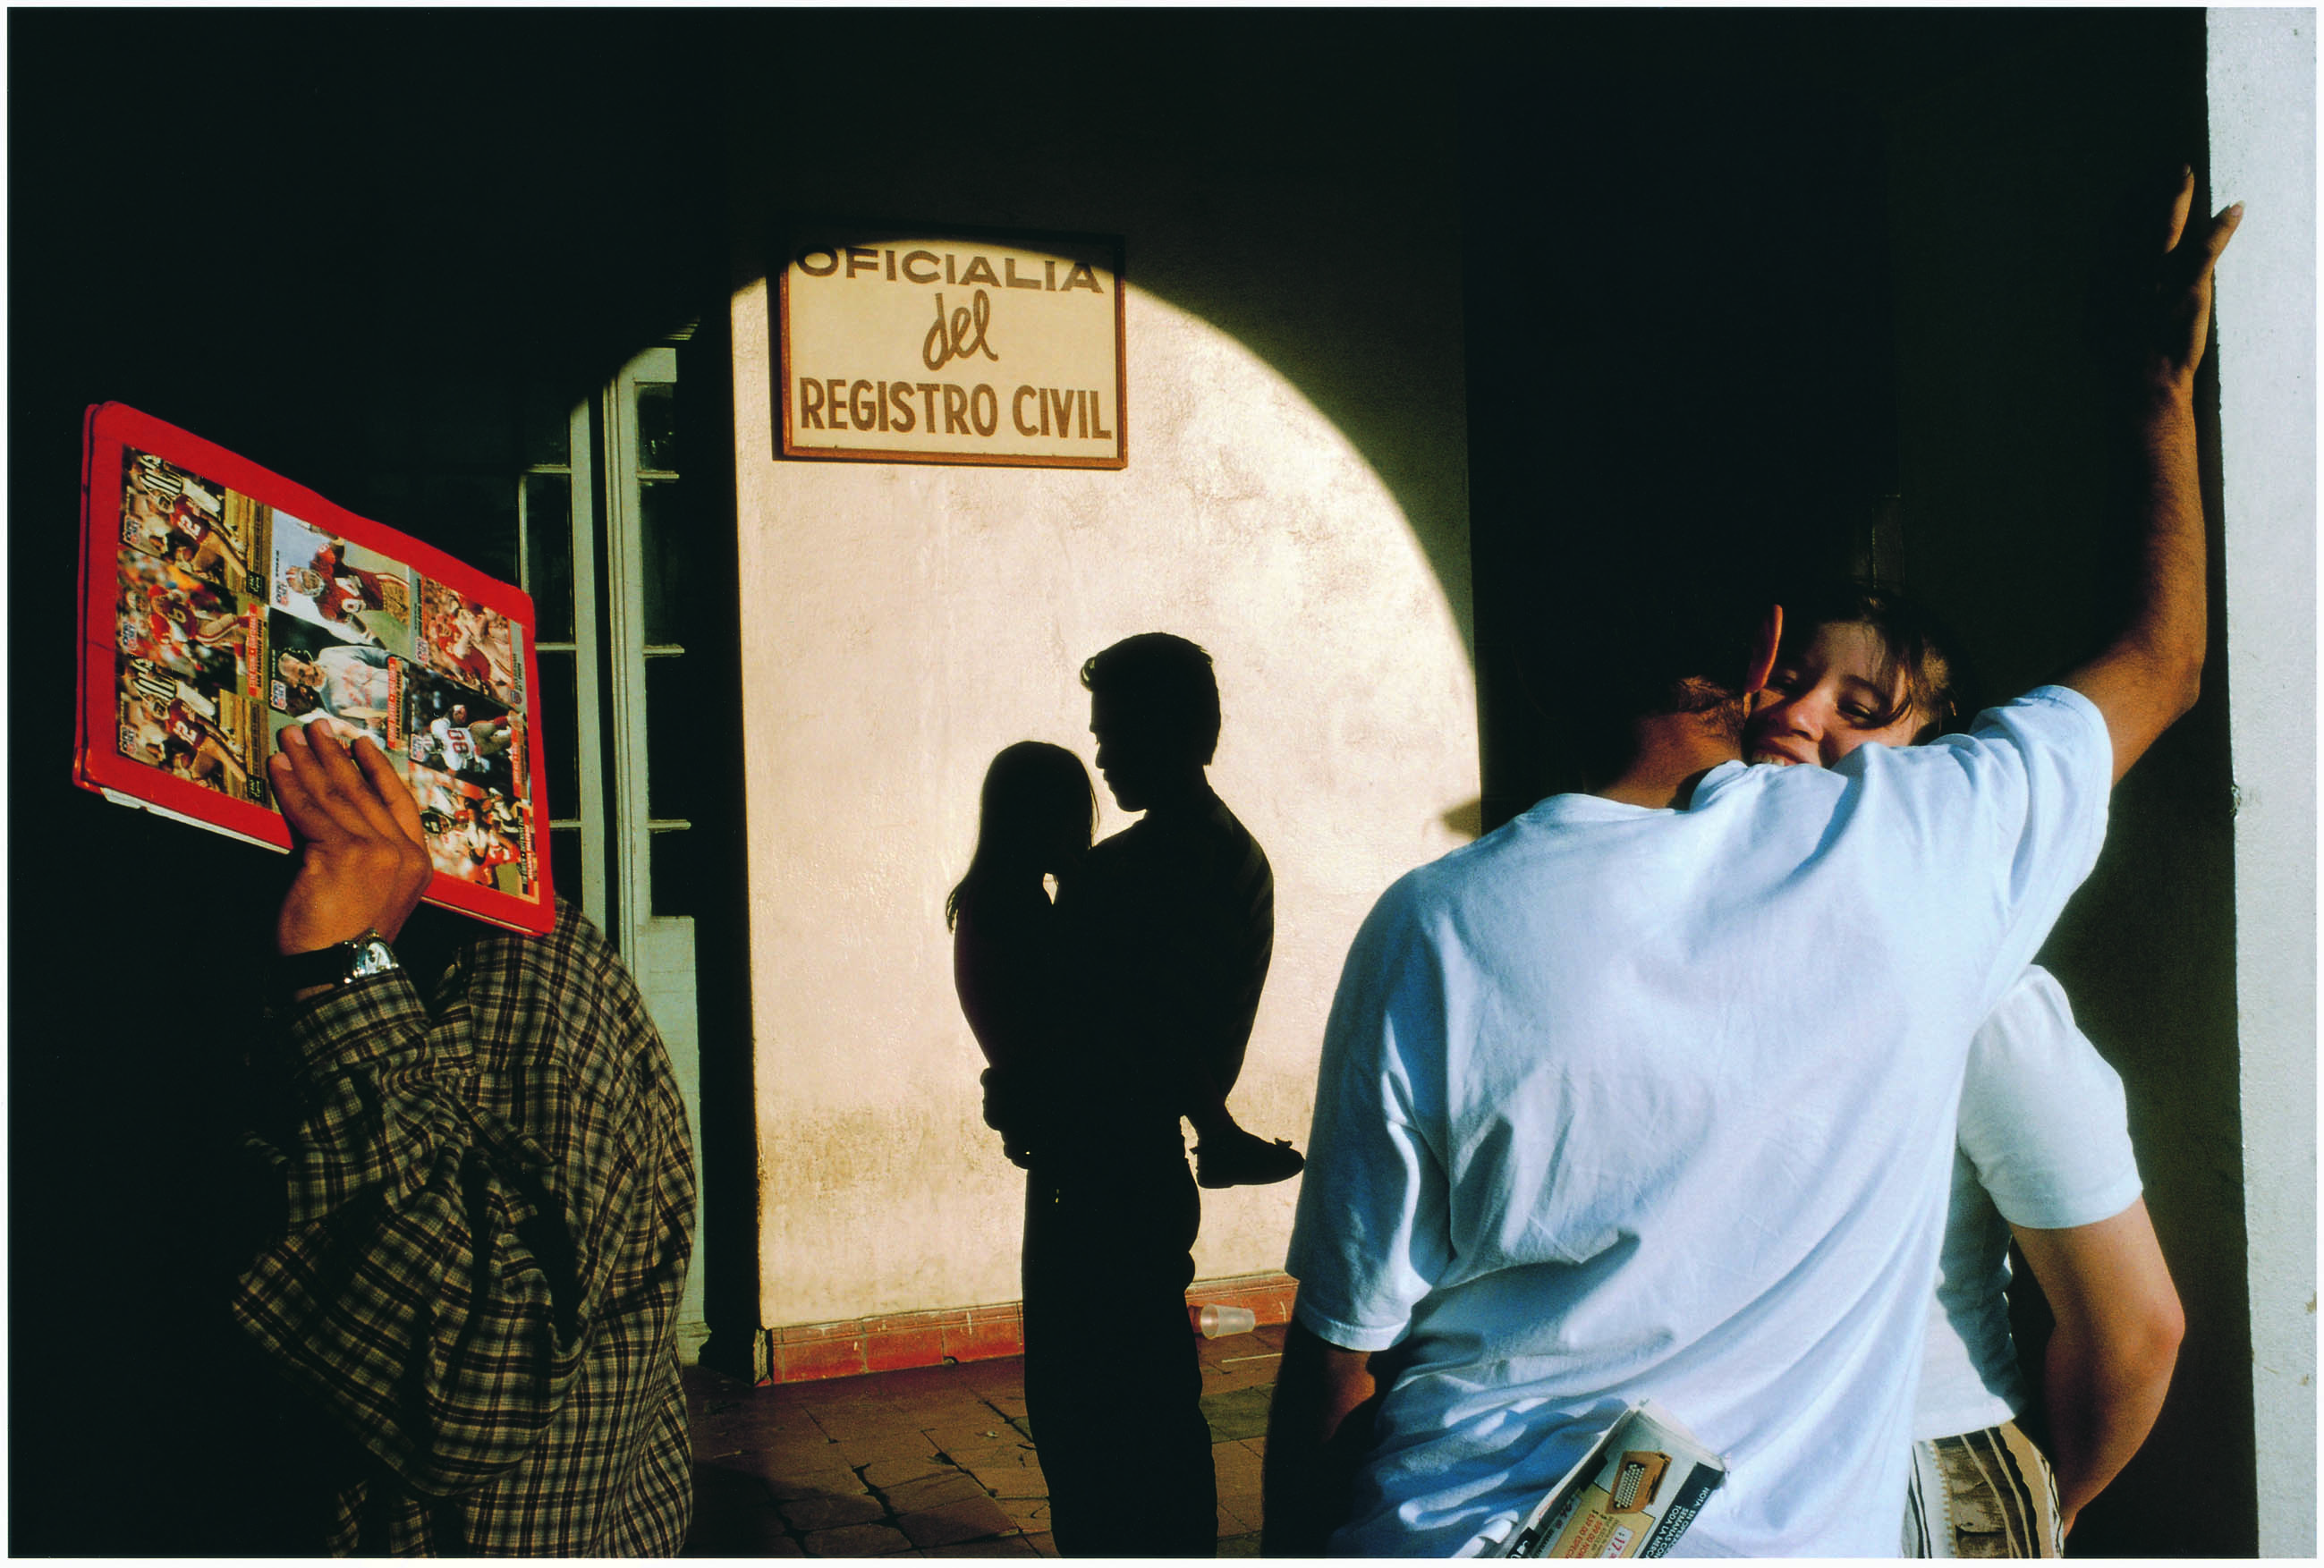 Alex Webb - Nuevo Laredo, Messico - 1996 - ©Alex Webb/Magnum - Photos/Contrasto